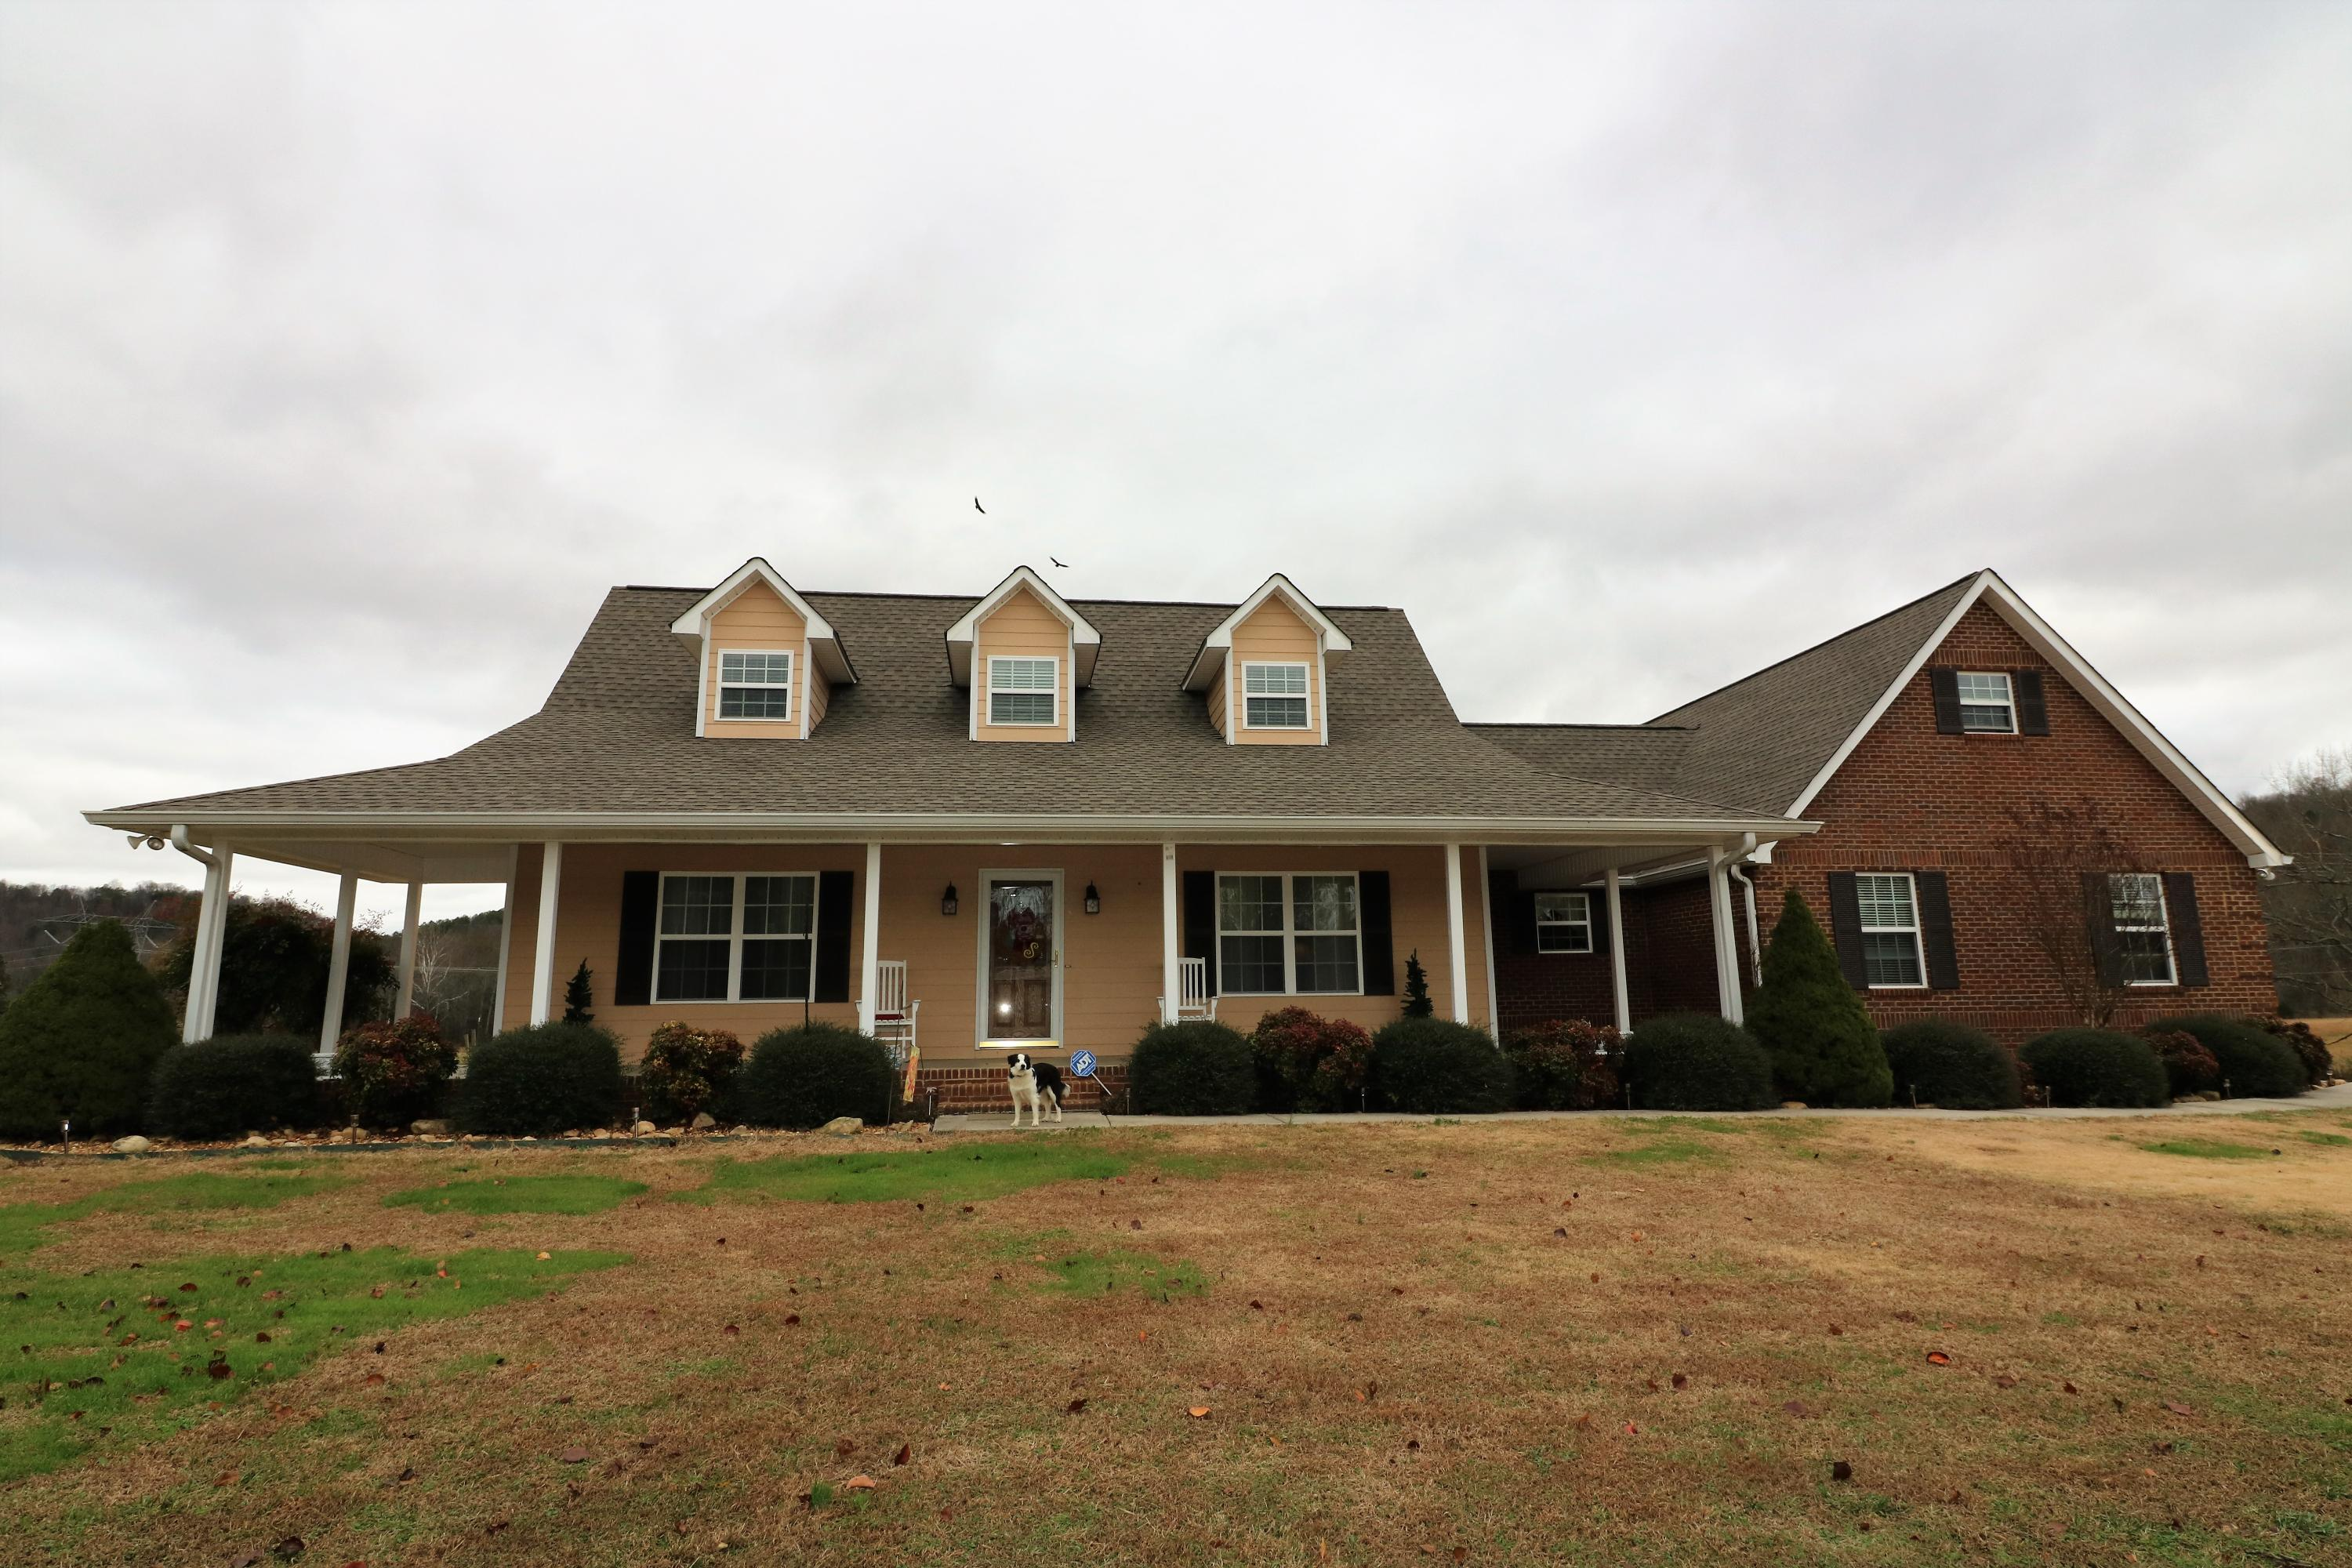 294 County Road 60, Athens, Tennessee, United States 37303, 4 Bedrooms Bedrooms, ,2 BathroomsBathrooms,Single Family,For Sale,County Road 60,1122252